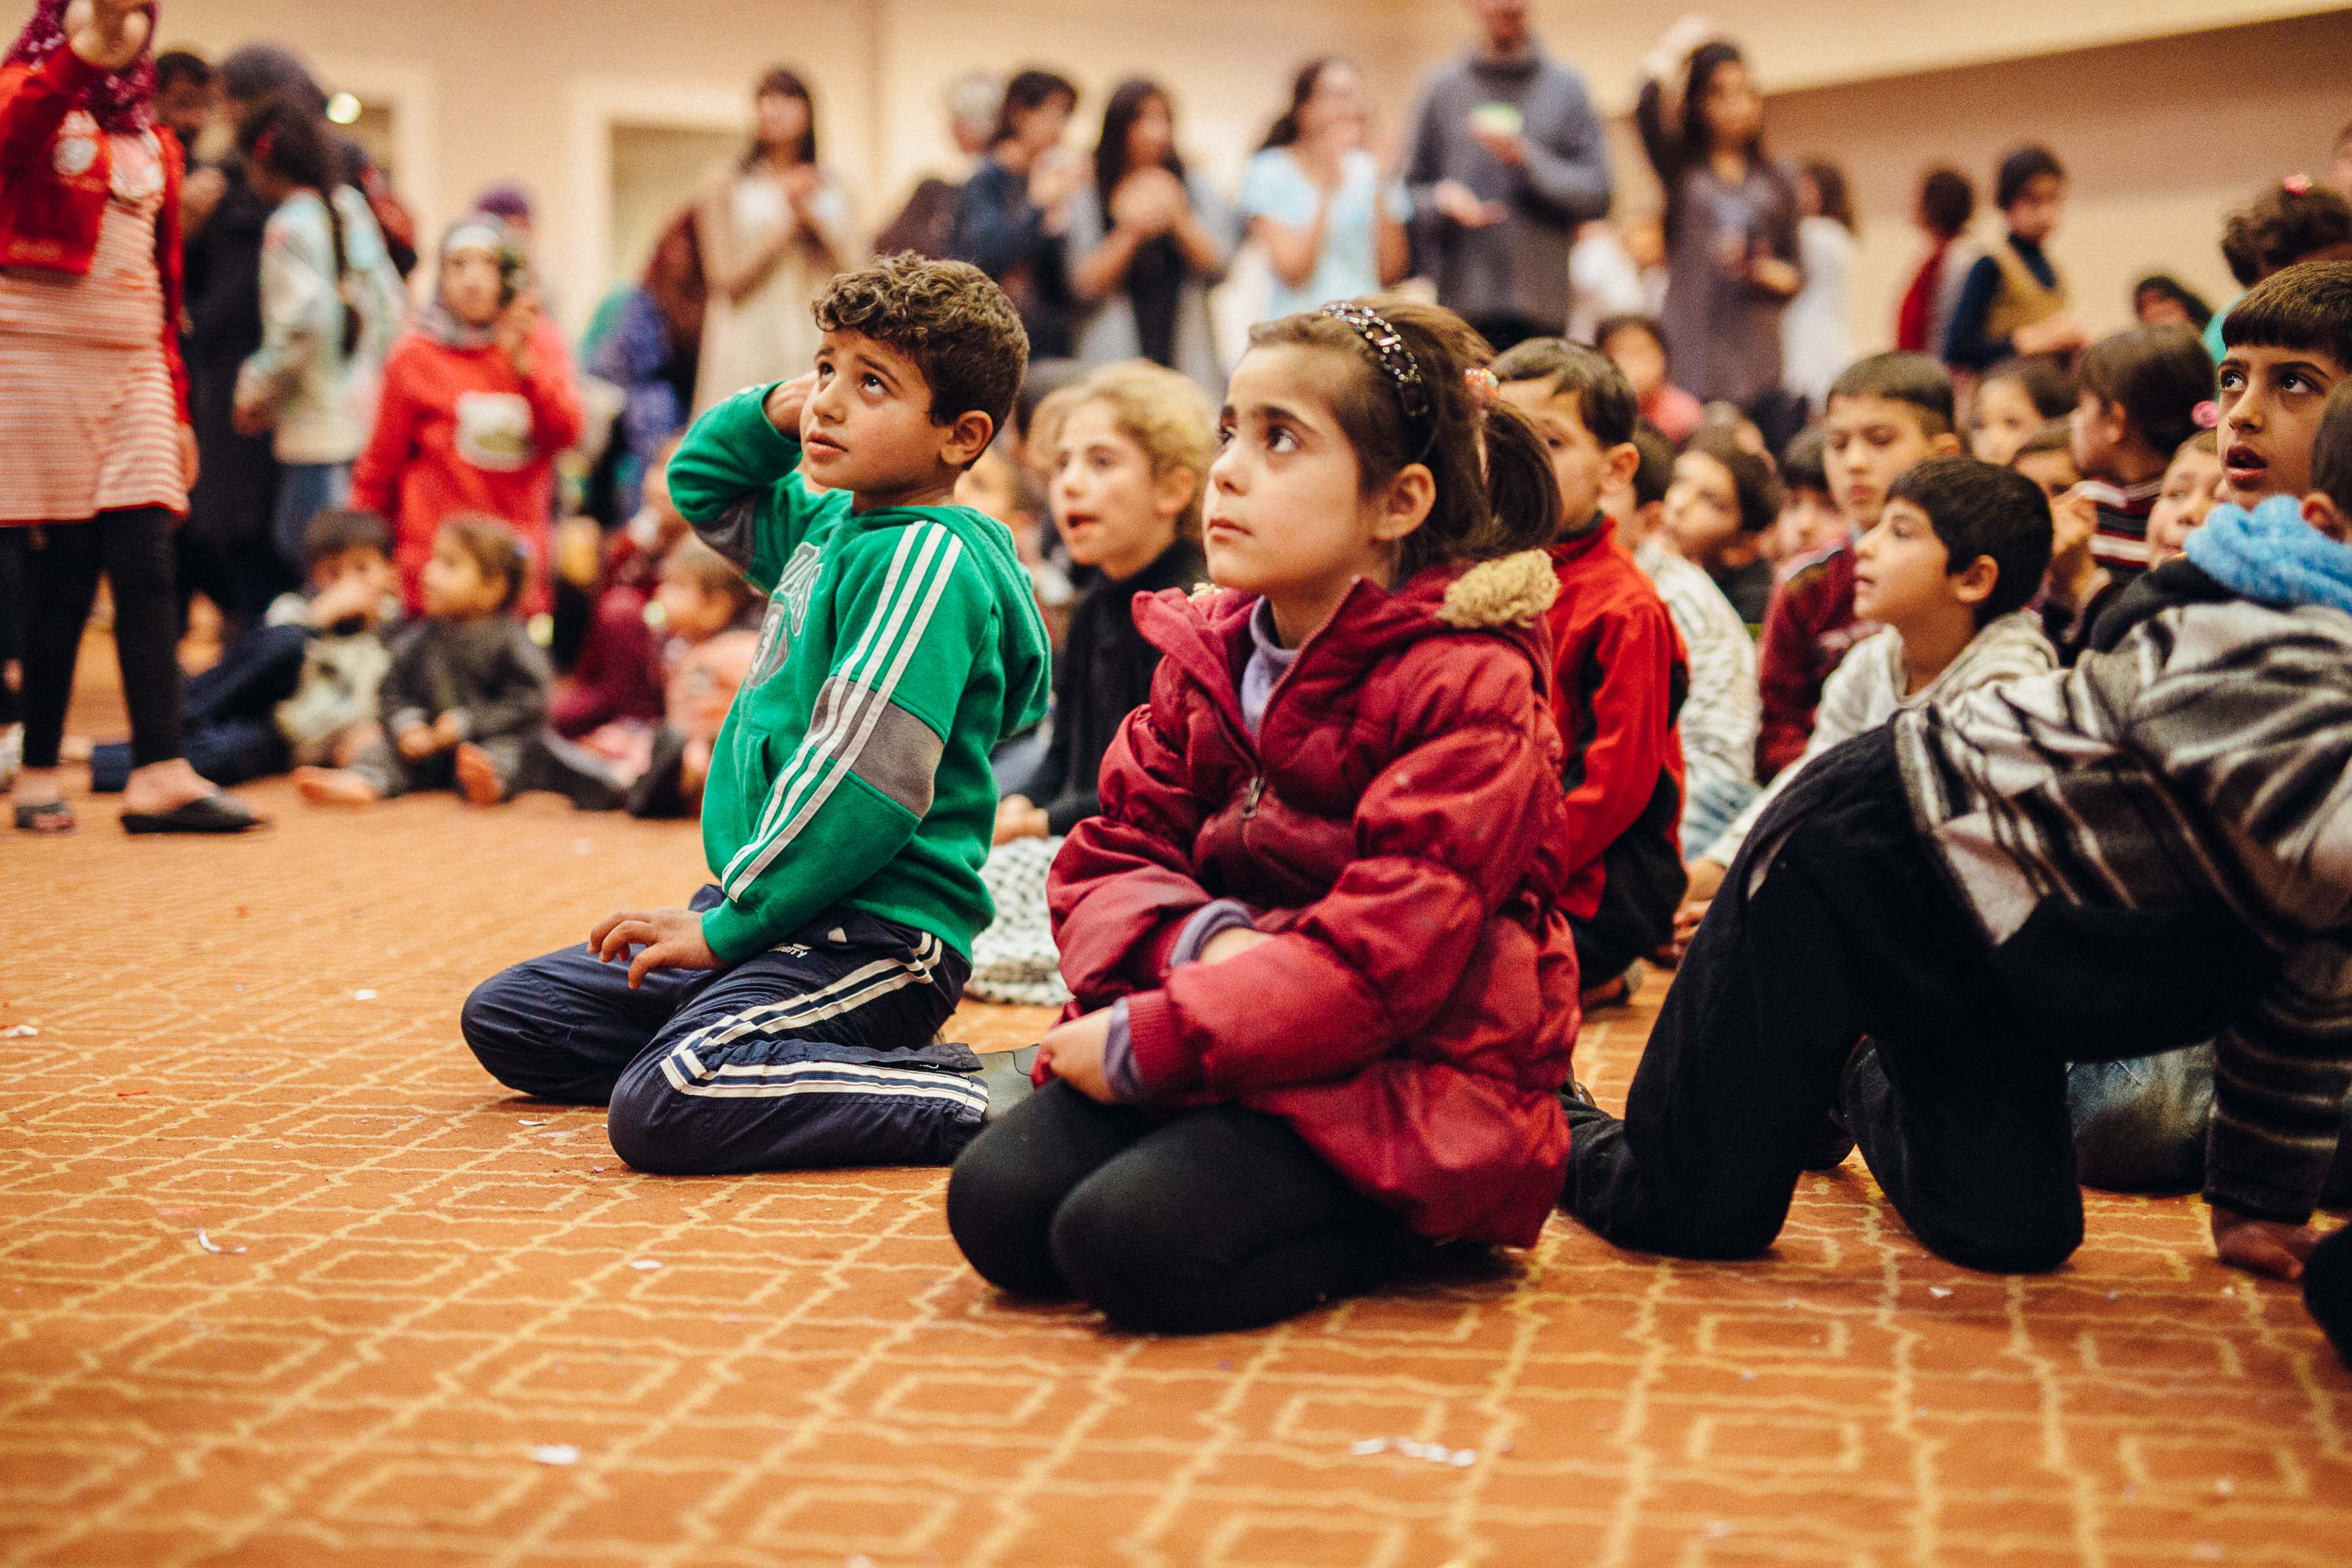 ChildrenPlazaHotel_SyrianStory_Final-135